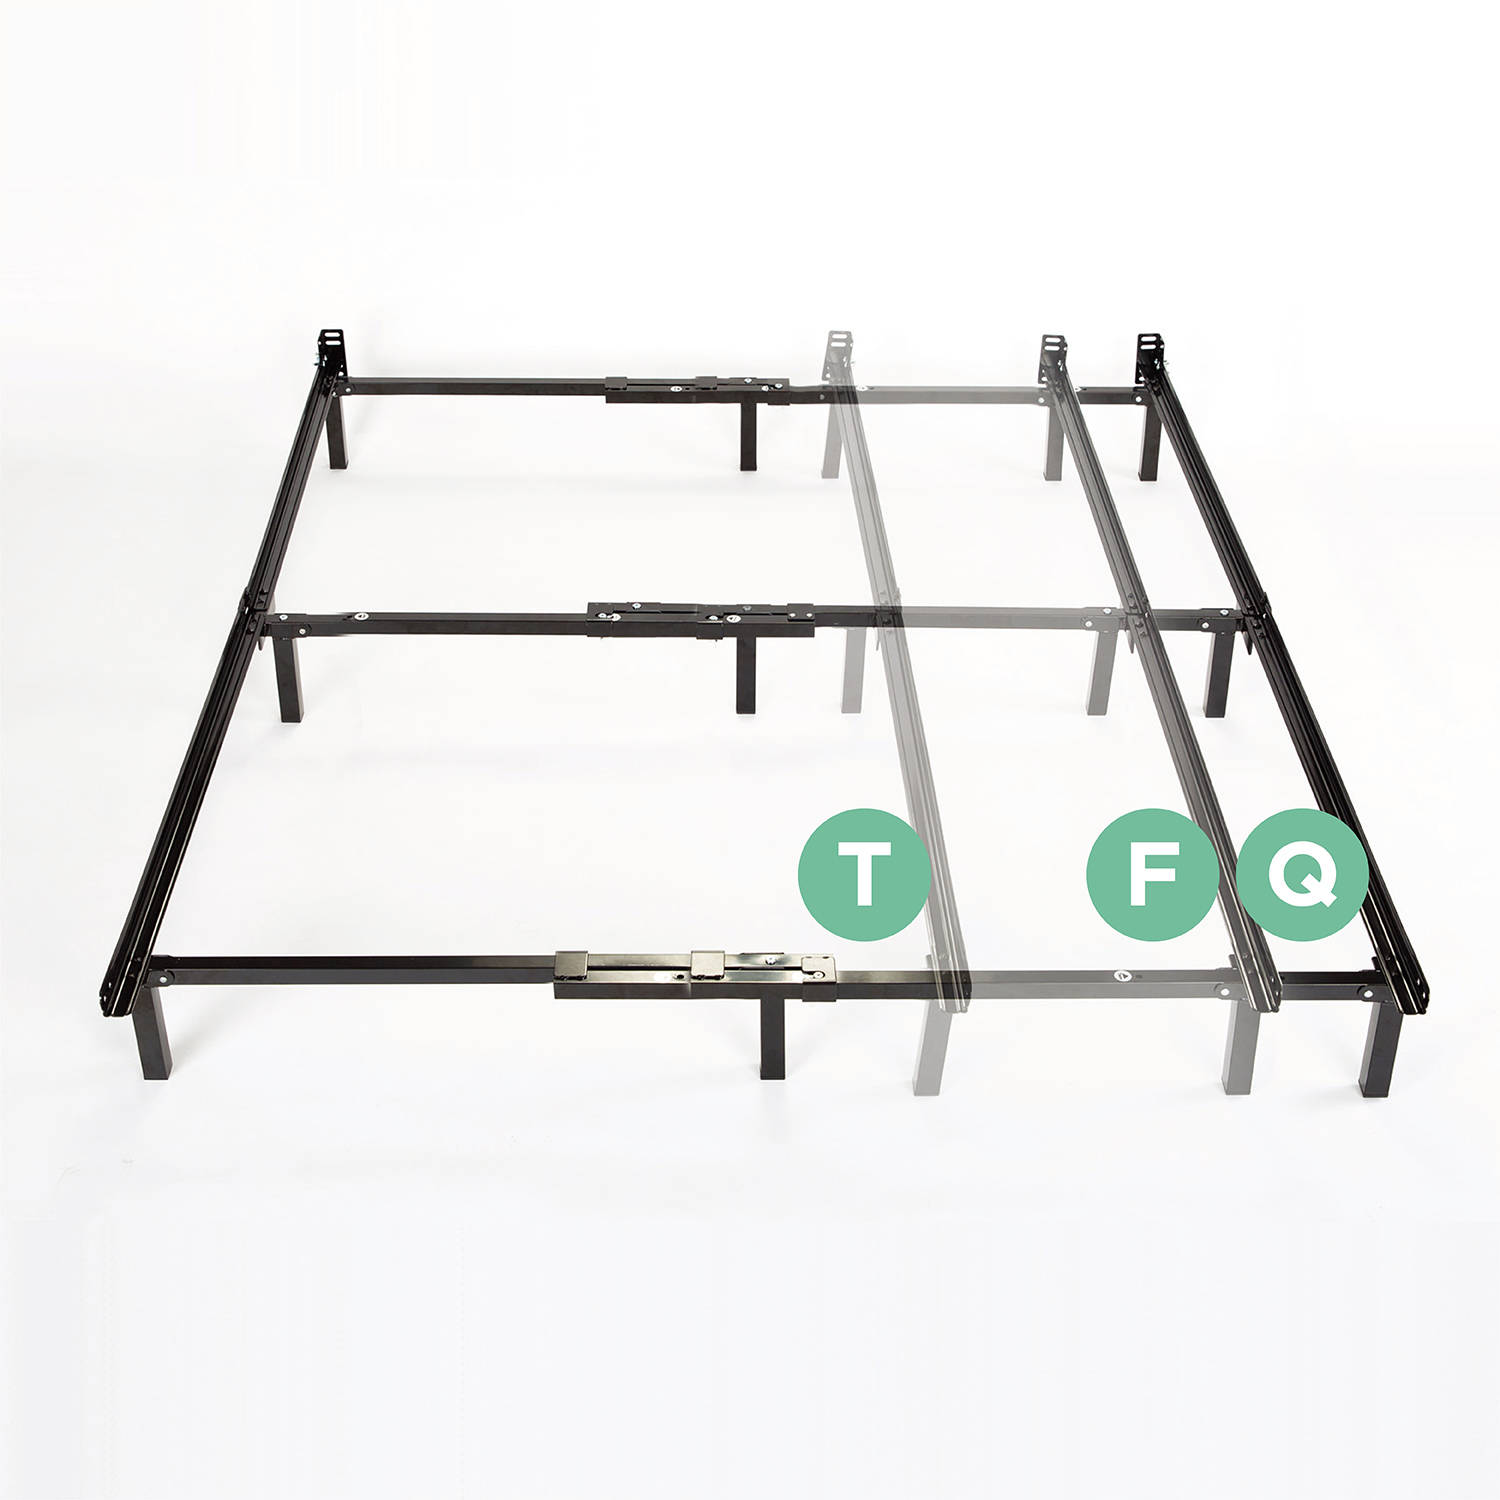 "Spa Sensations 7"" Low Profile Adjustable Steel Bed Frame Easy No"